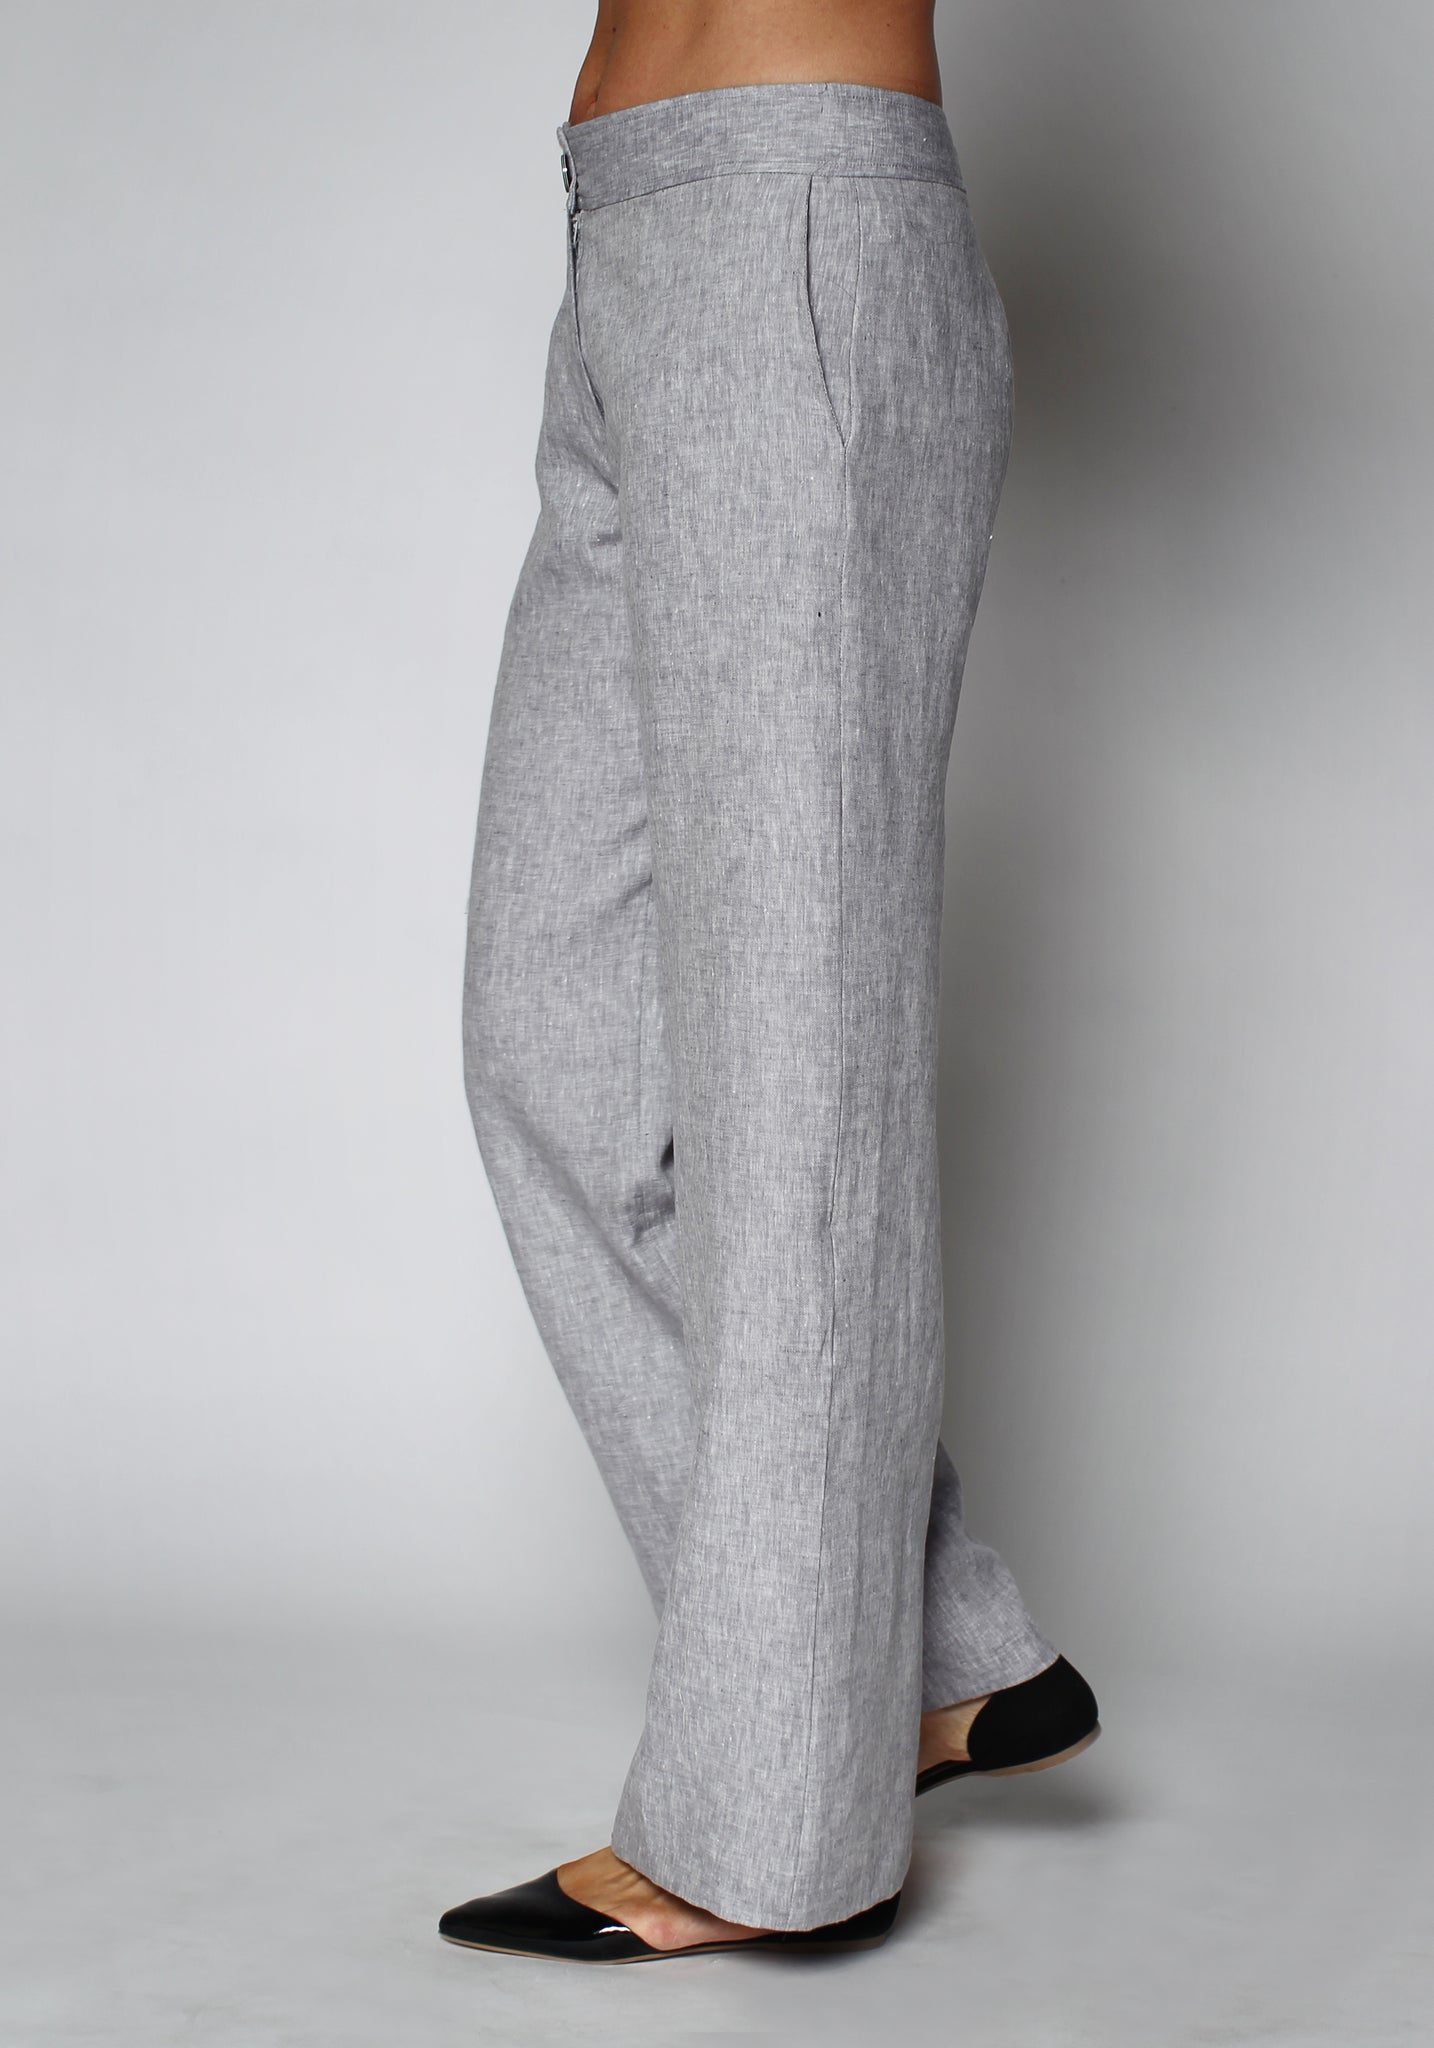 3-0419 Wide Leg Linen Pants - Ruth Tate